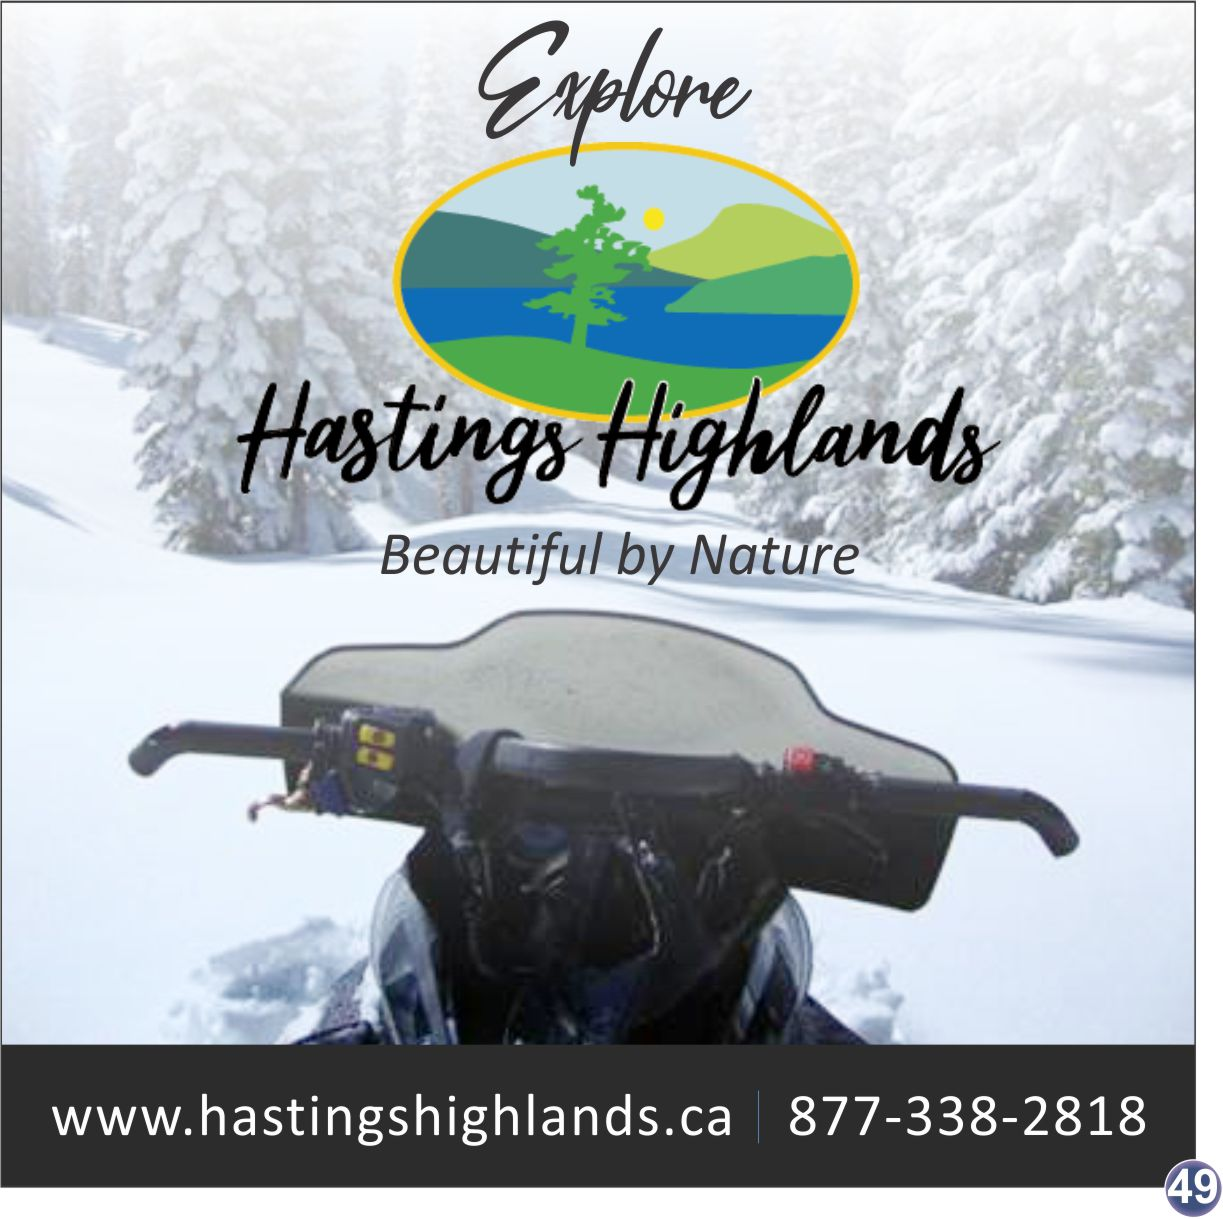 Hastings Highlands